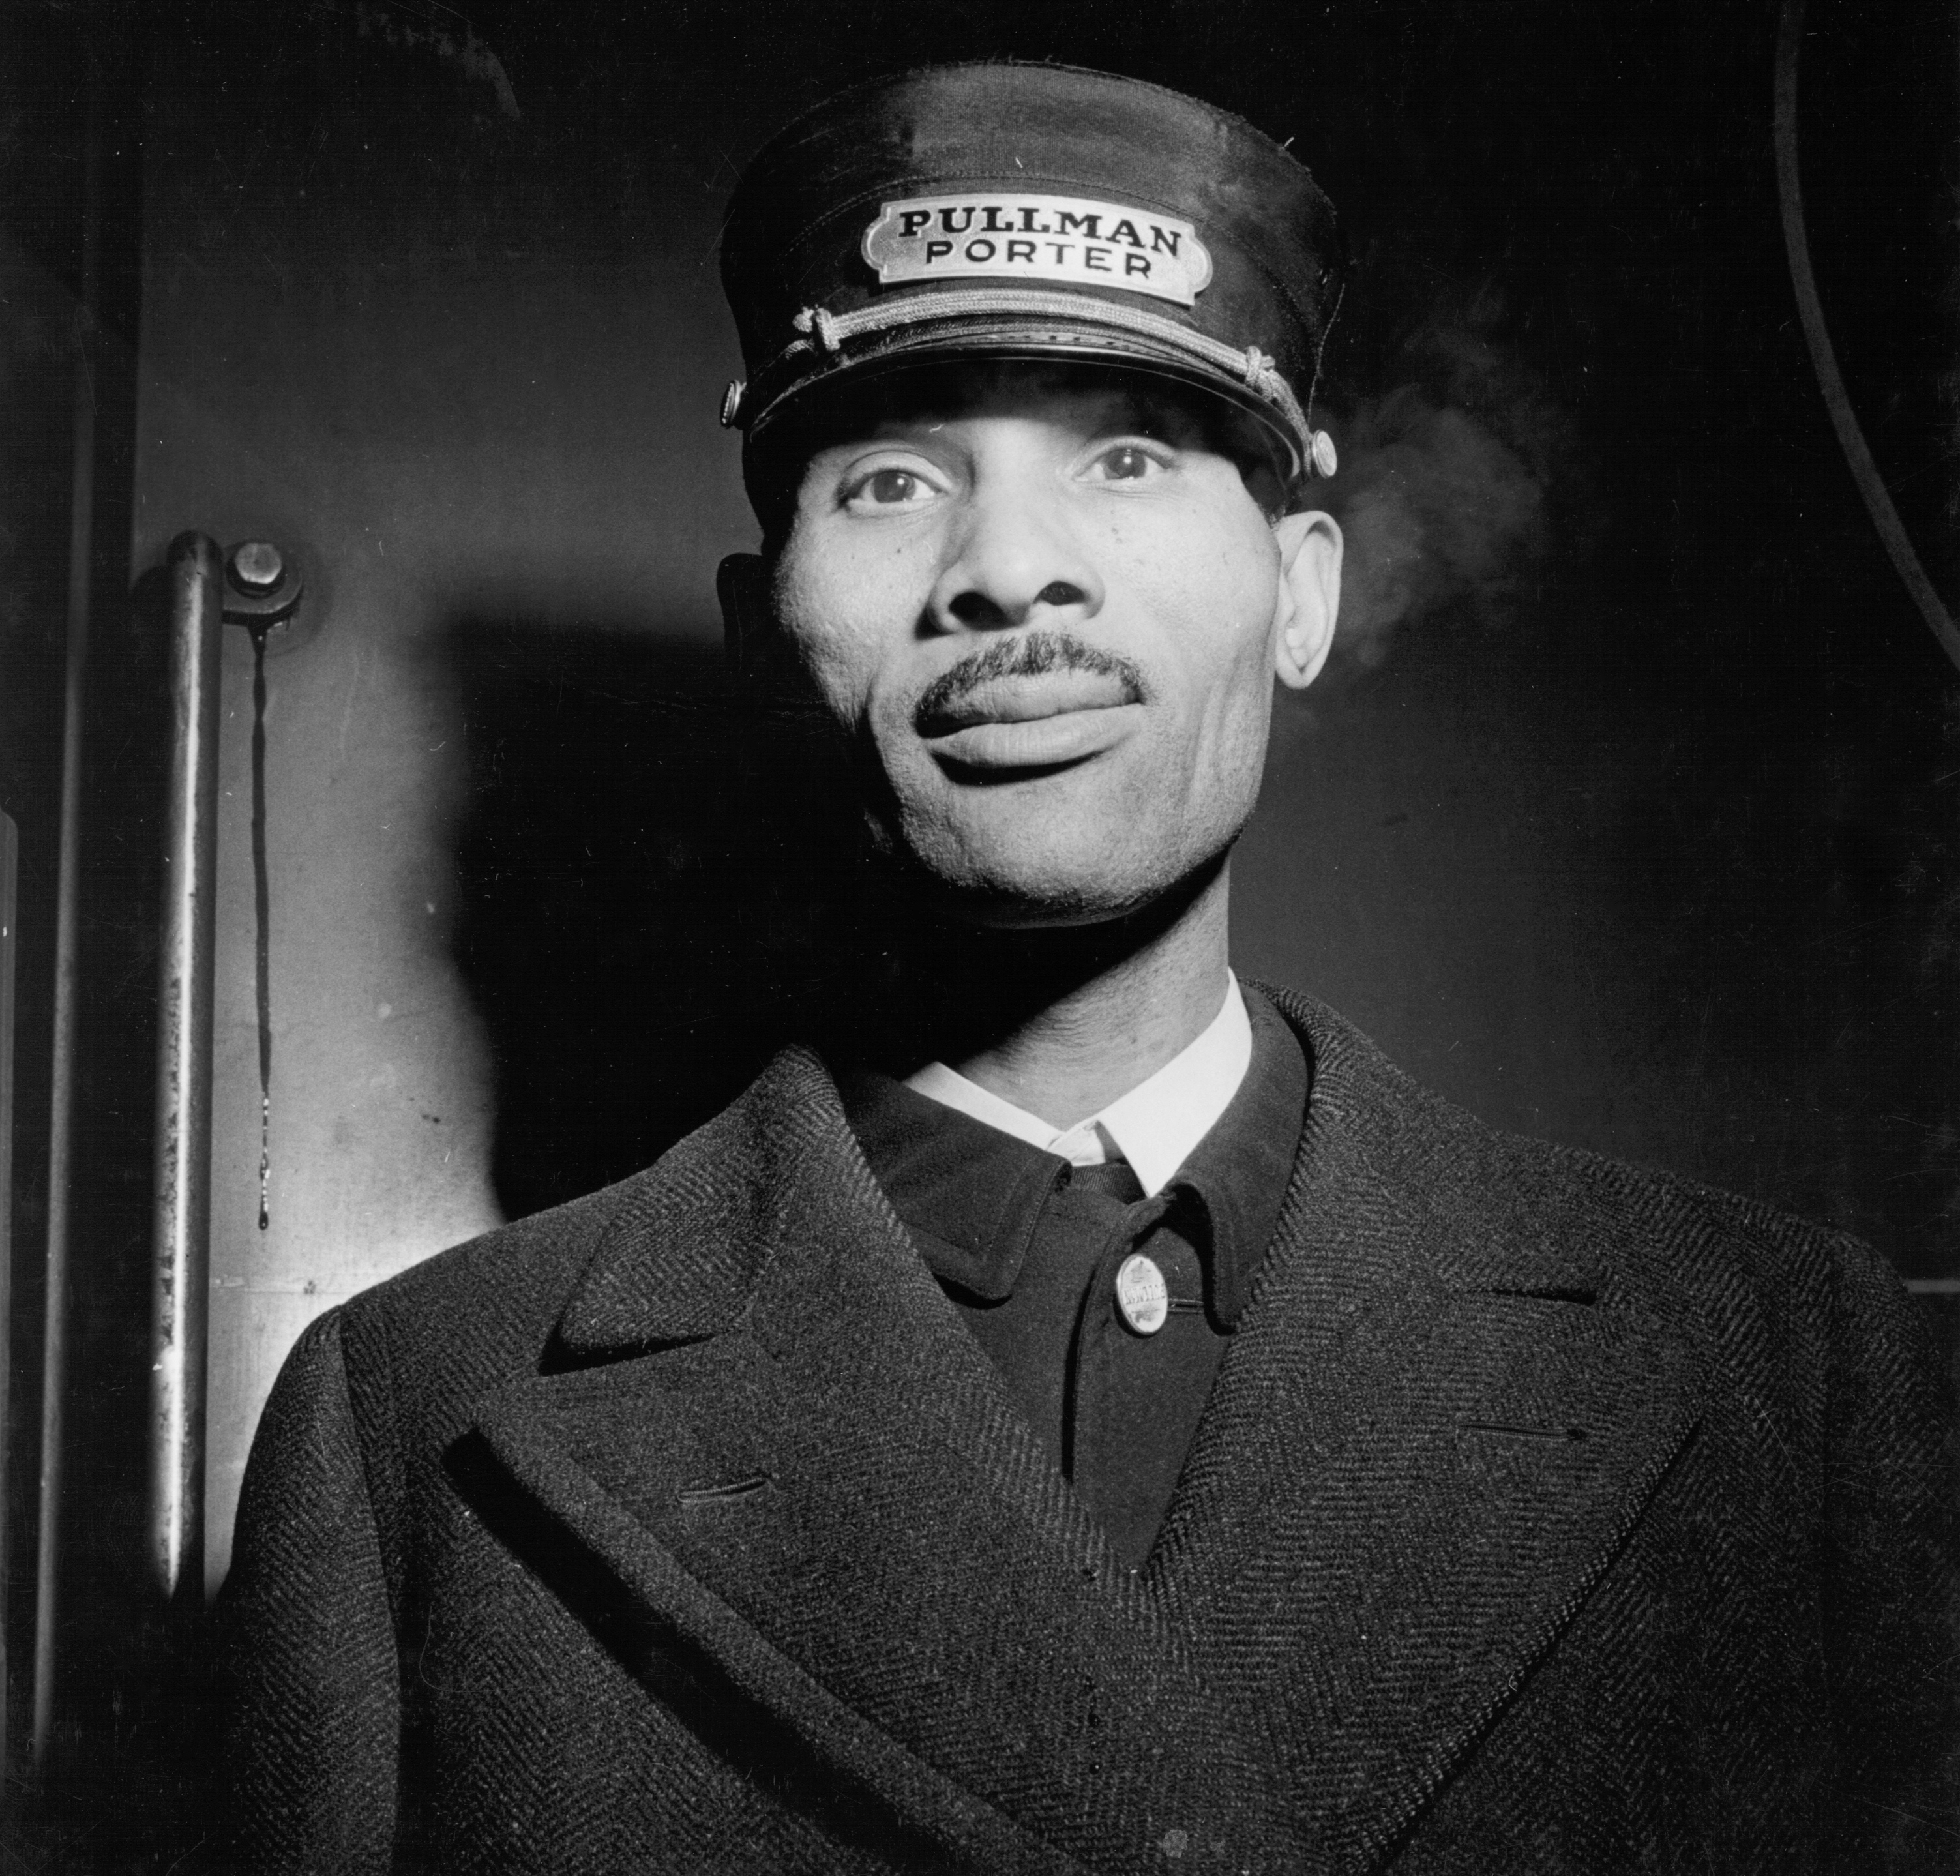 Le Meilleur Winfield Welch And The Pullman Porters The N*Gr* Leagues Ce Mois Ci